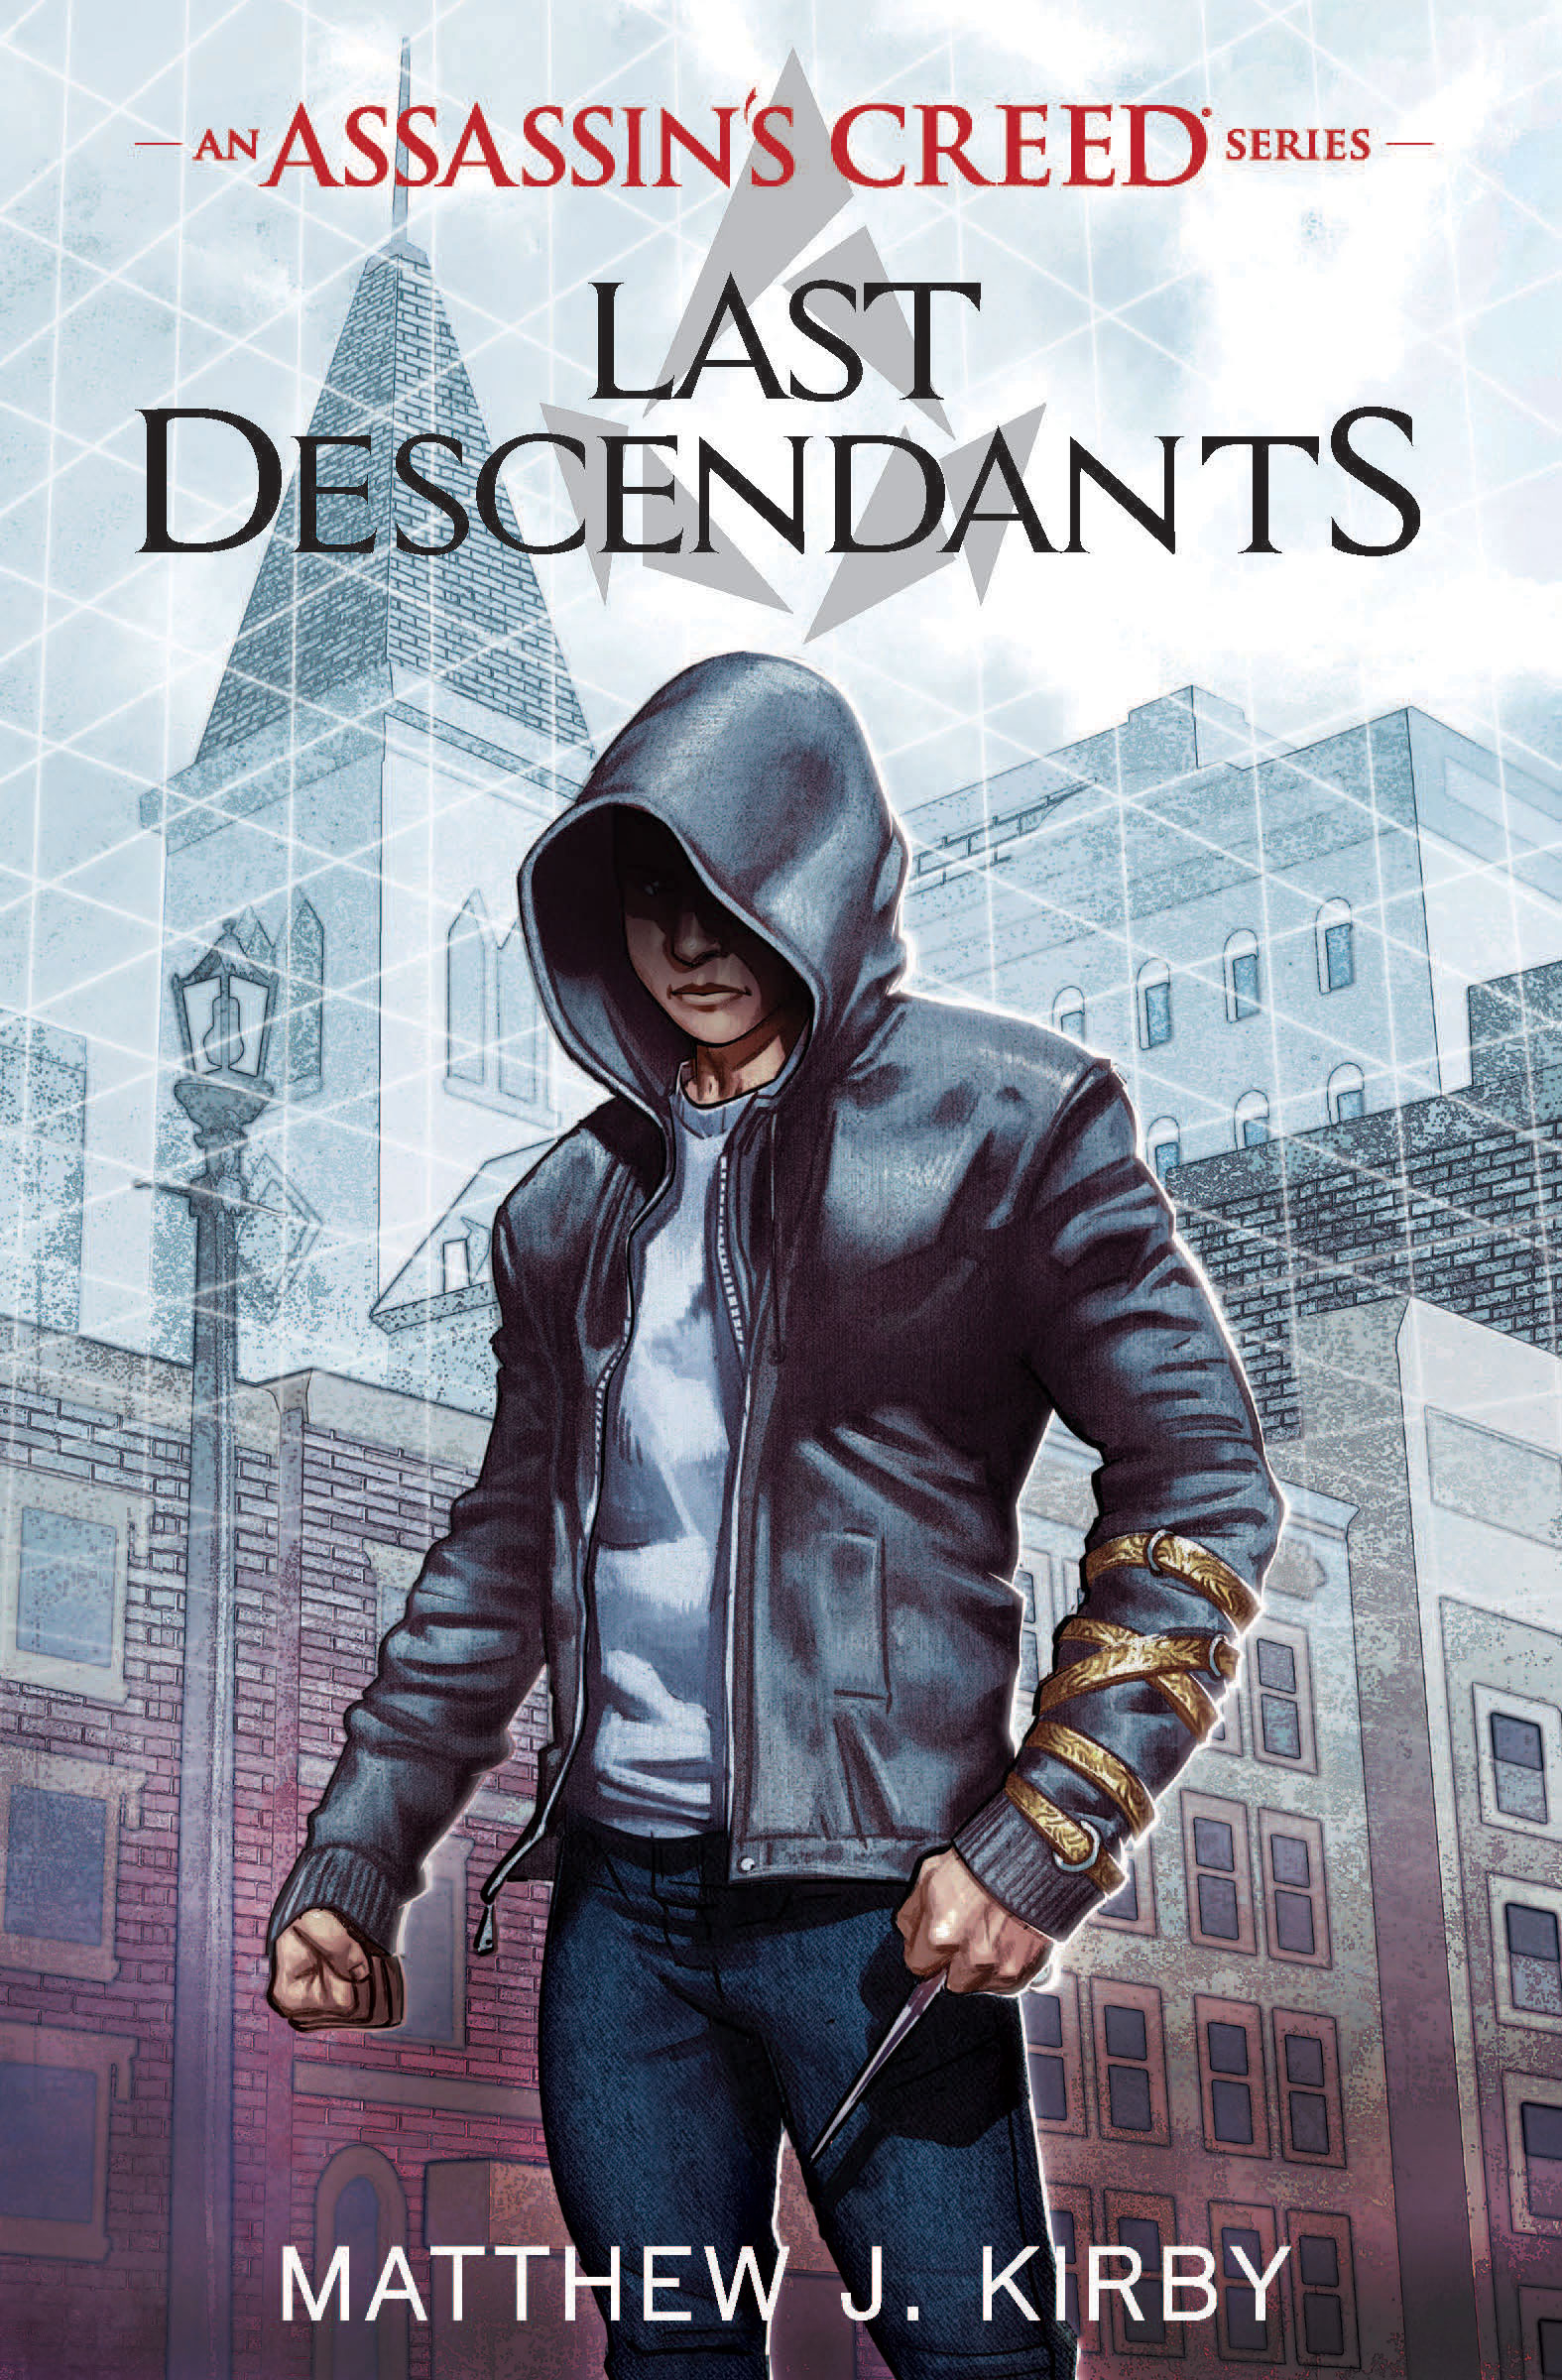 Assassin's Creed: Last Descendants (series)